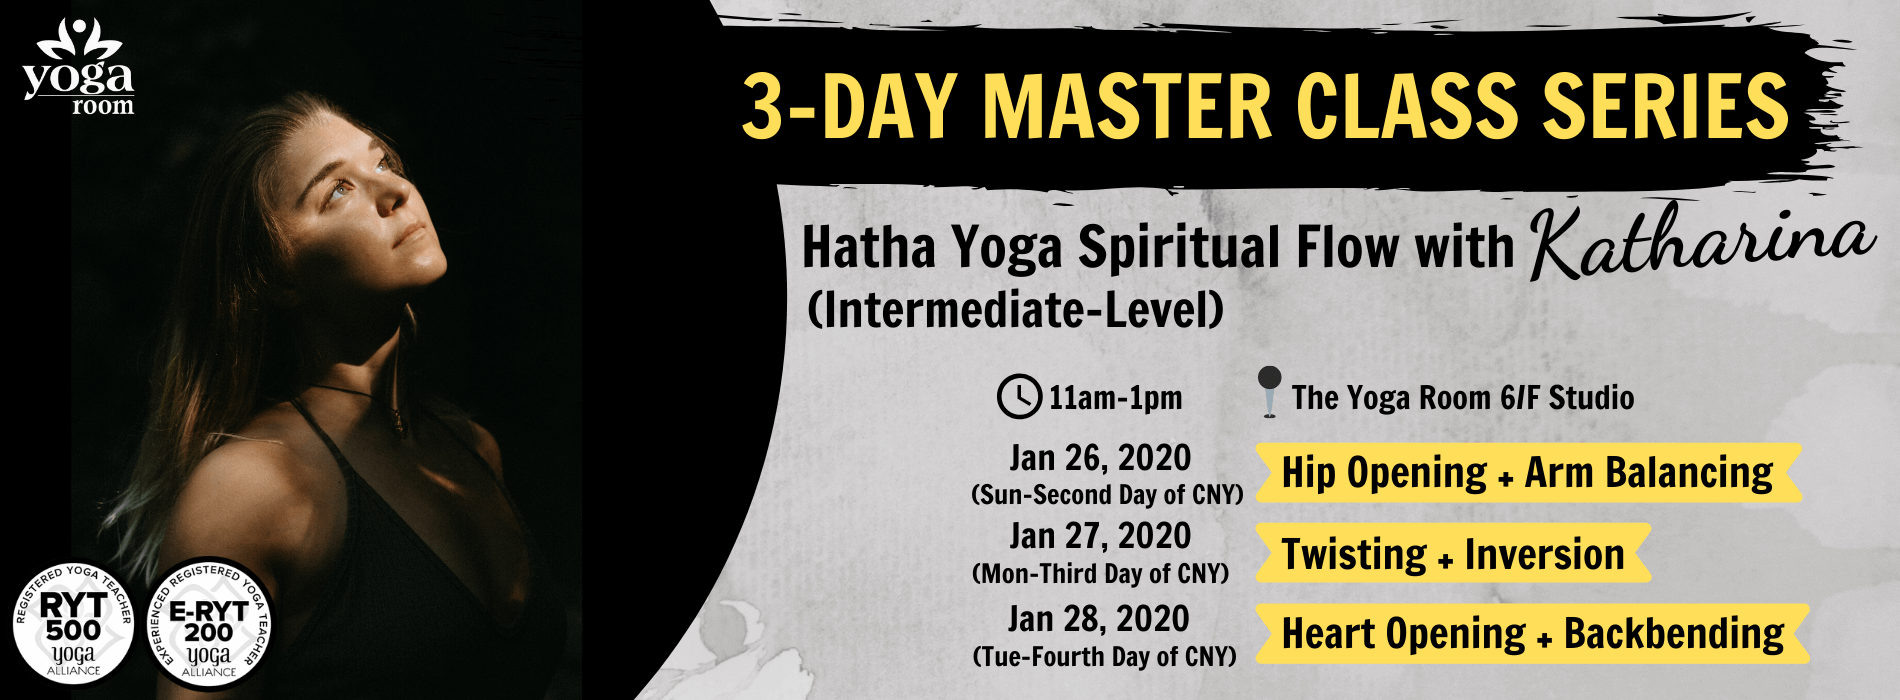 3 day master class series